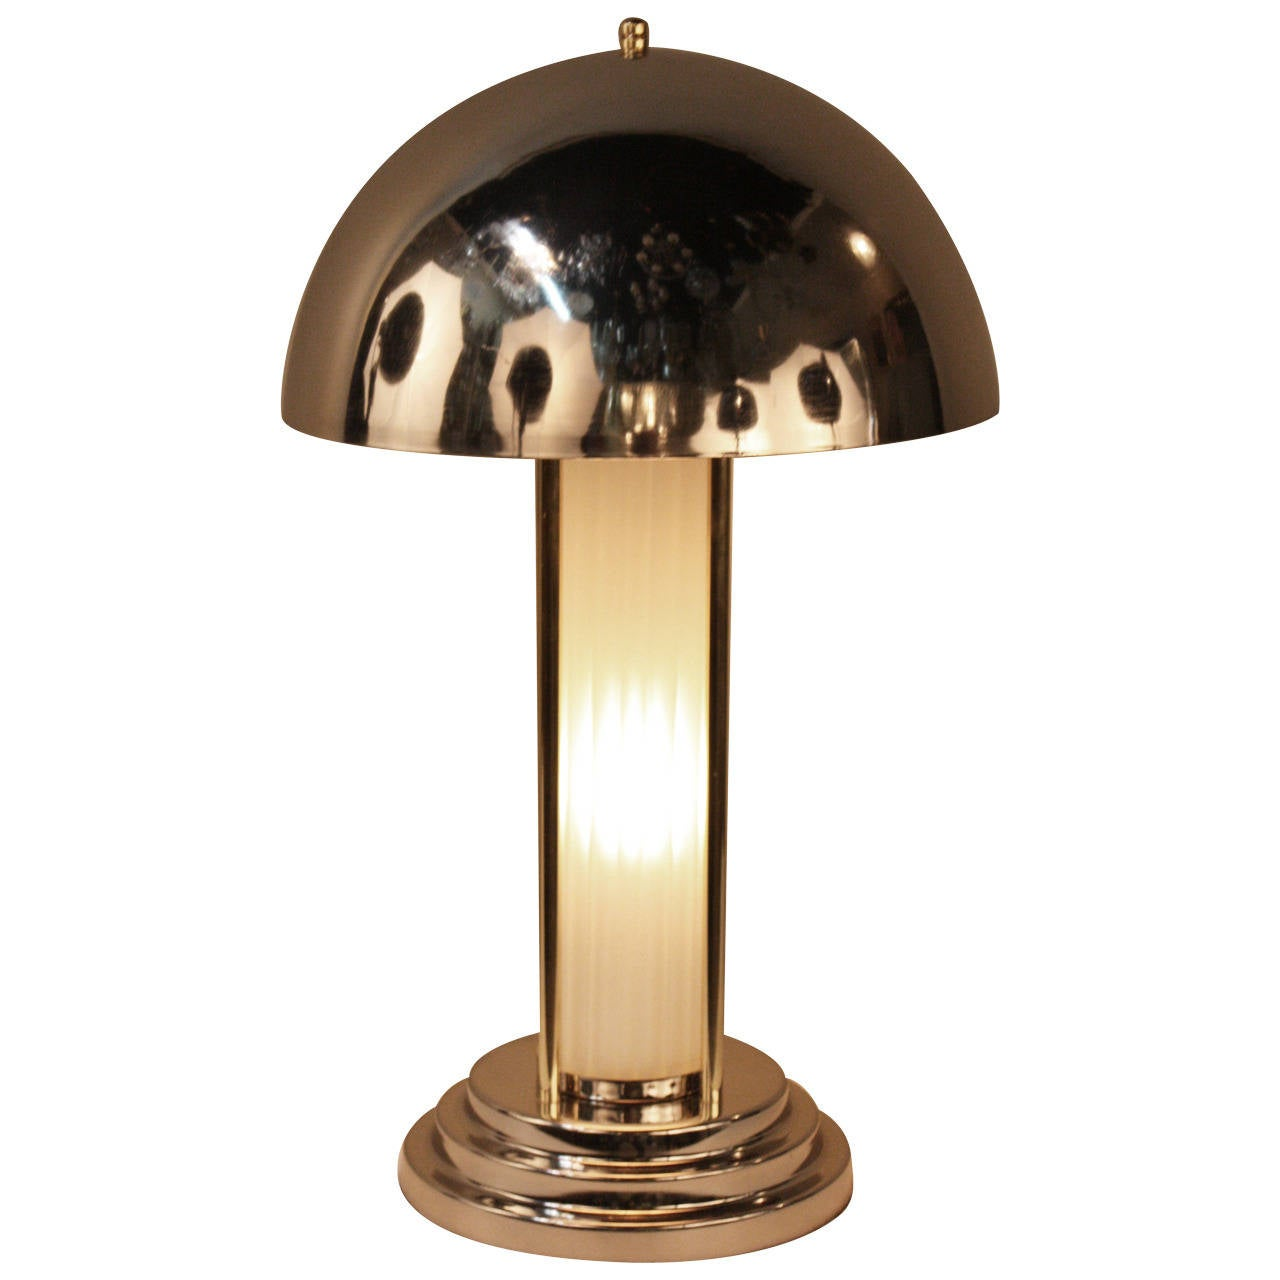 French art deco table lamp at 1stdibs for Images of table lamps